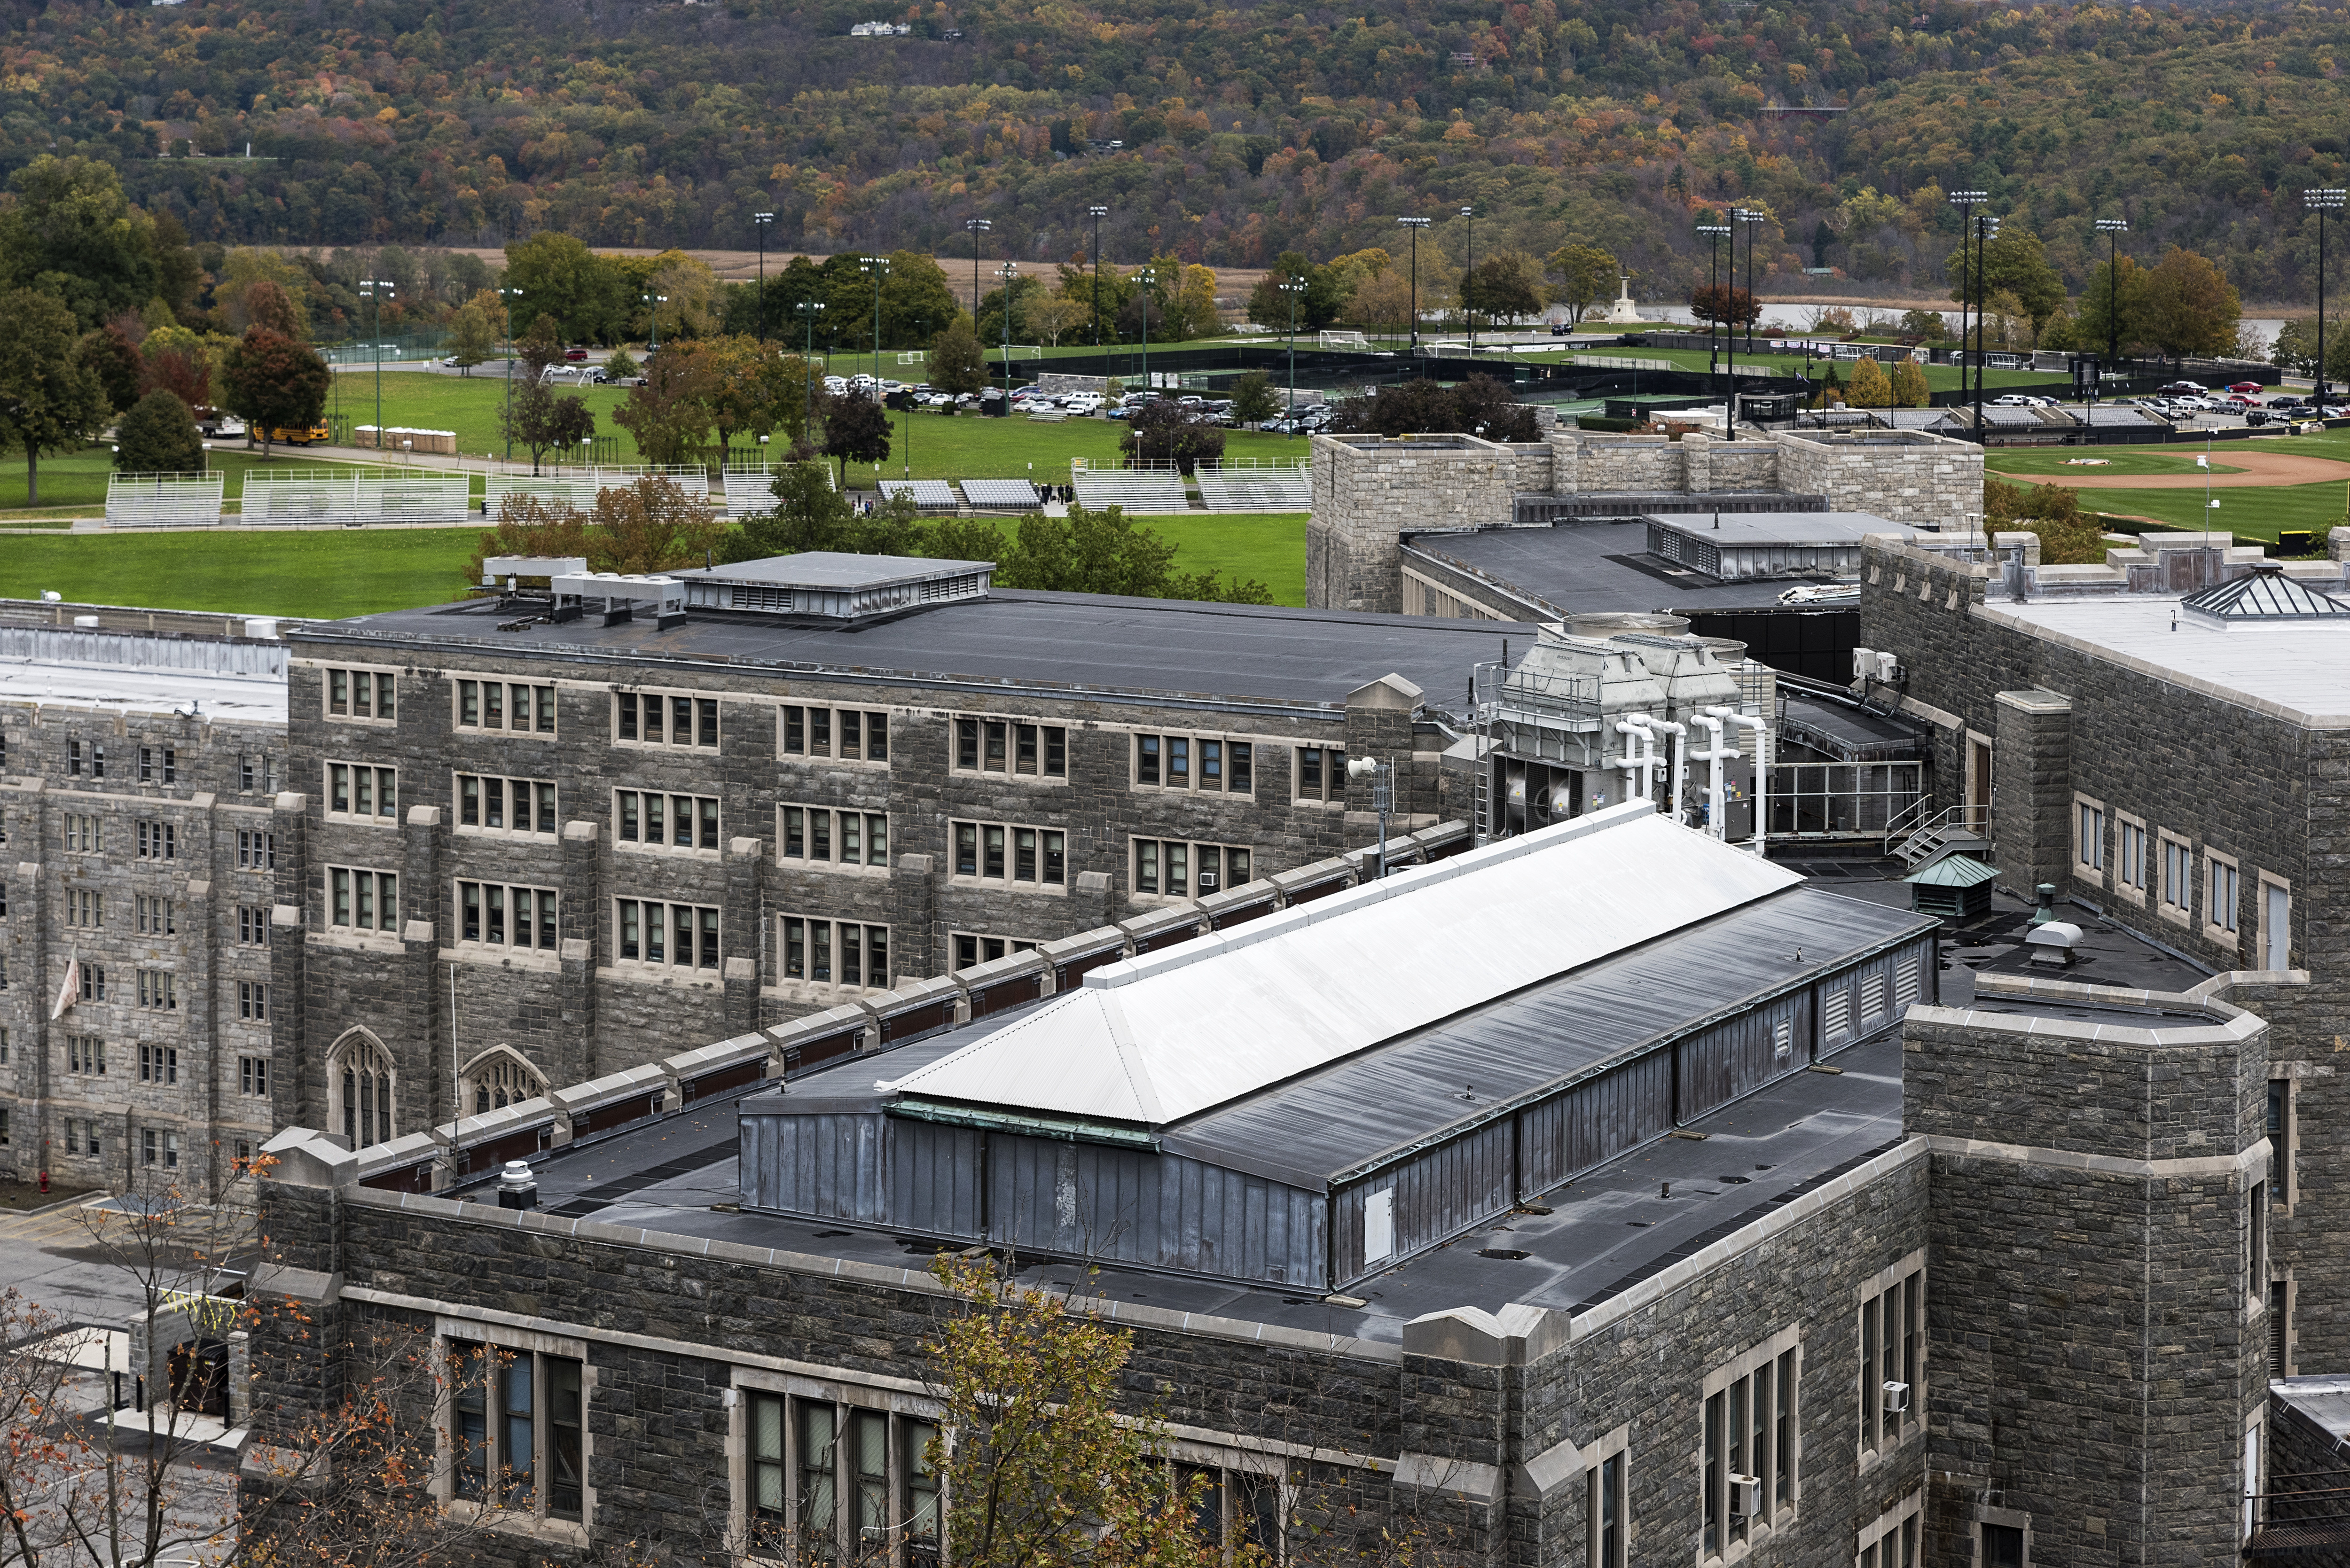 The West Point Military Academy campus.